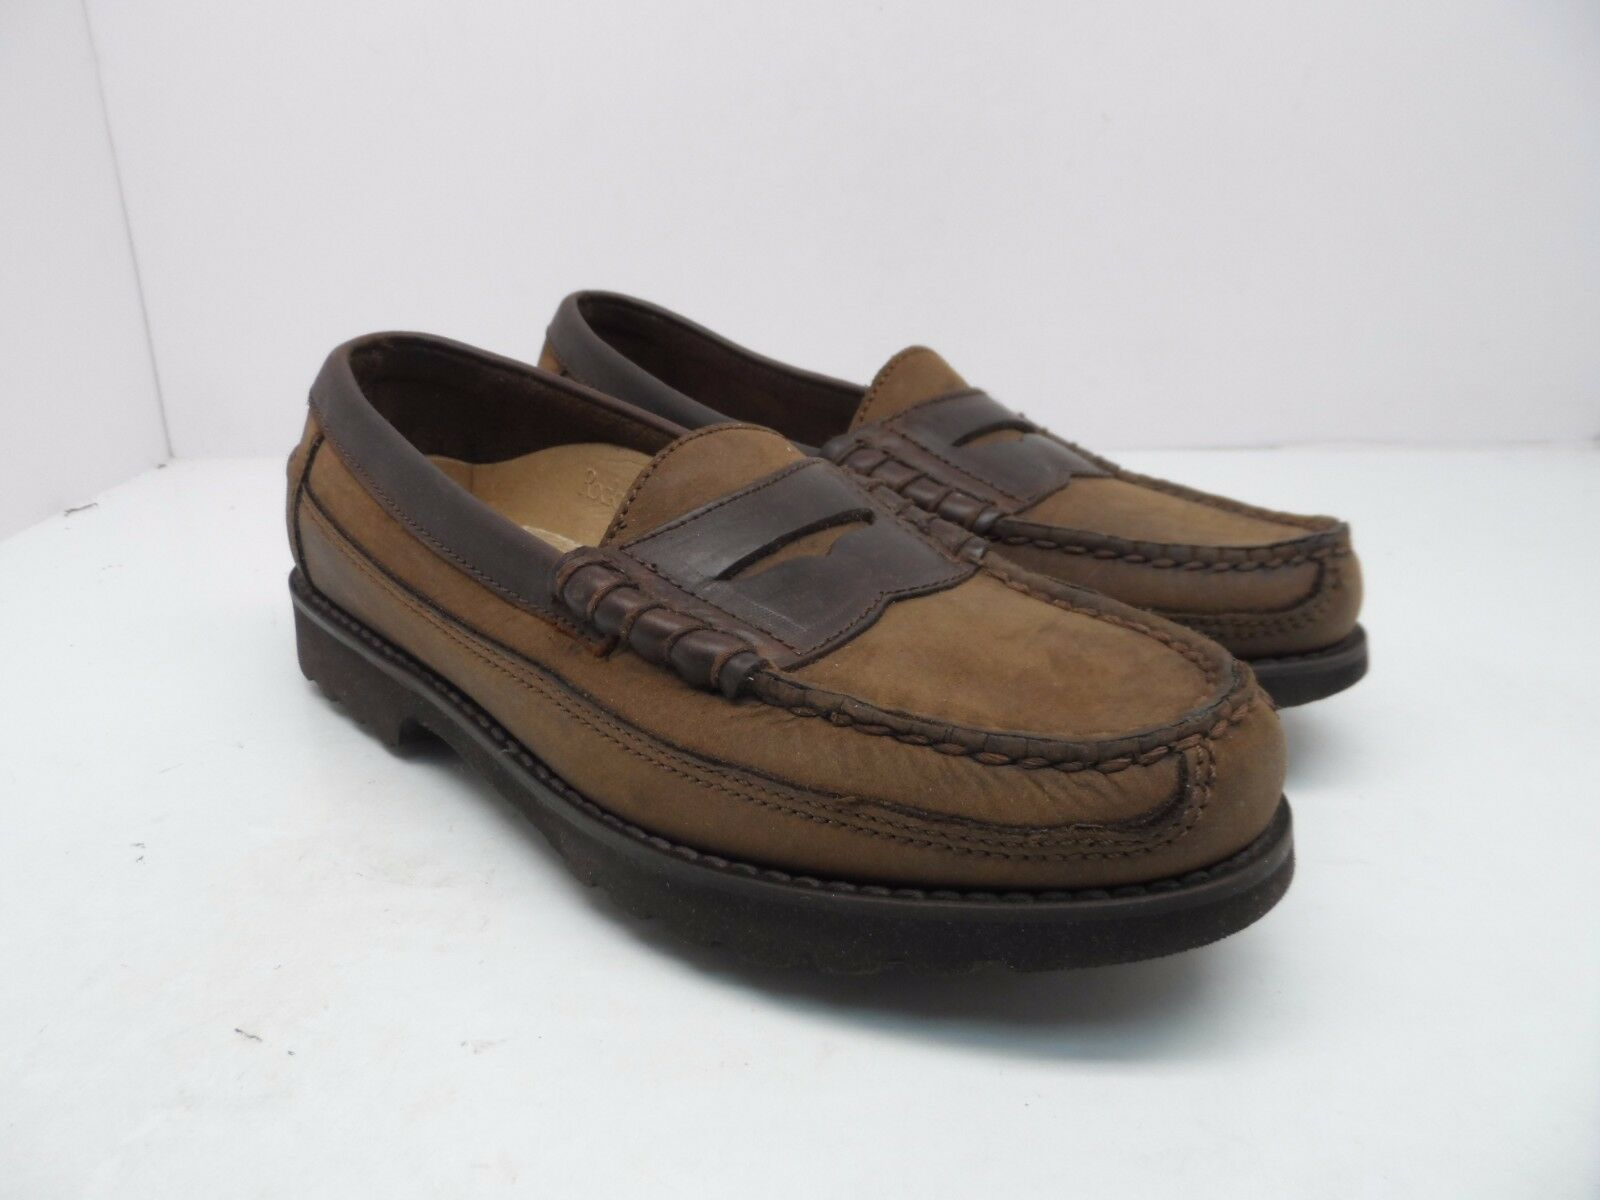 Roc Sport by Rockport Women's Leather Loafers w Vibram Sole Brown Size 7M